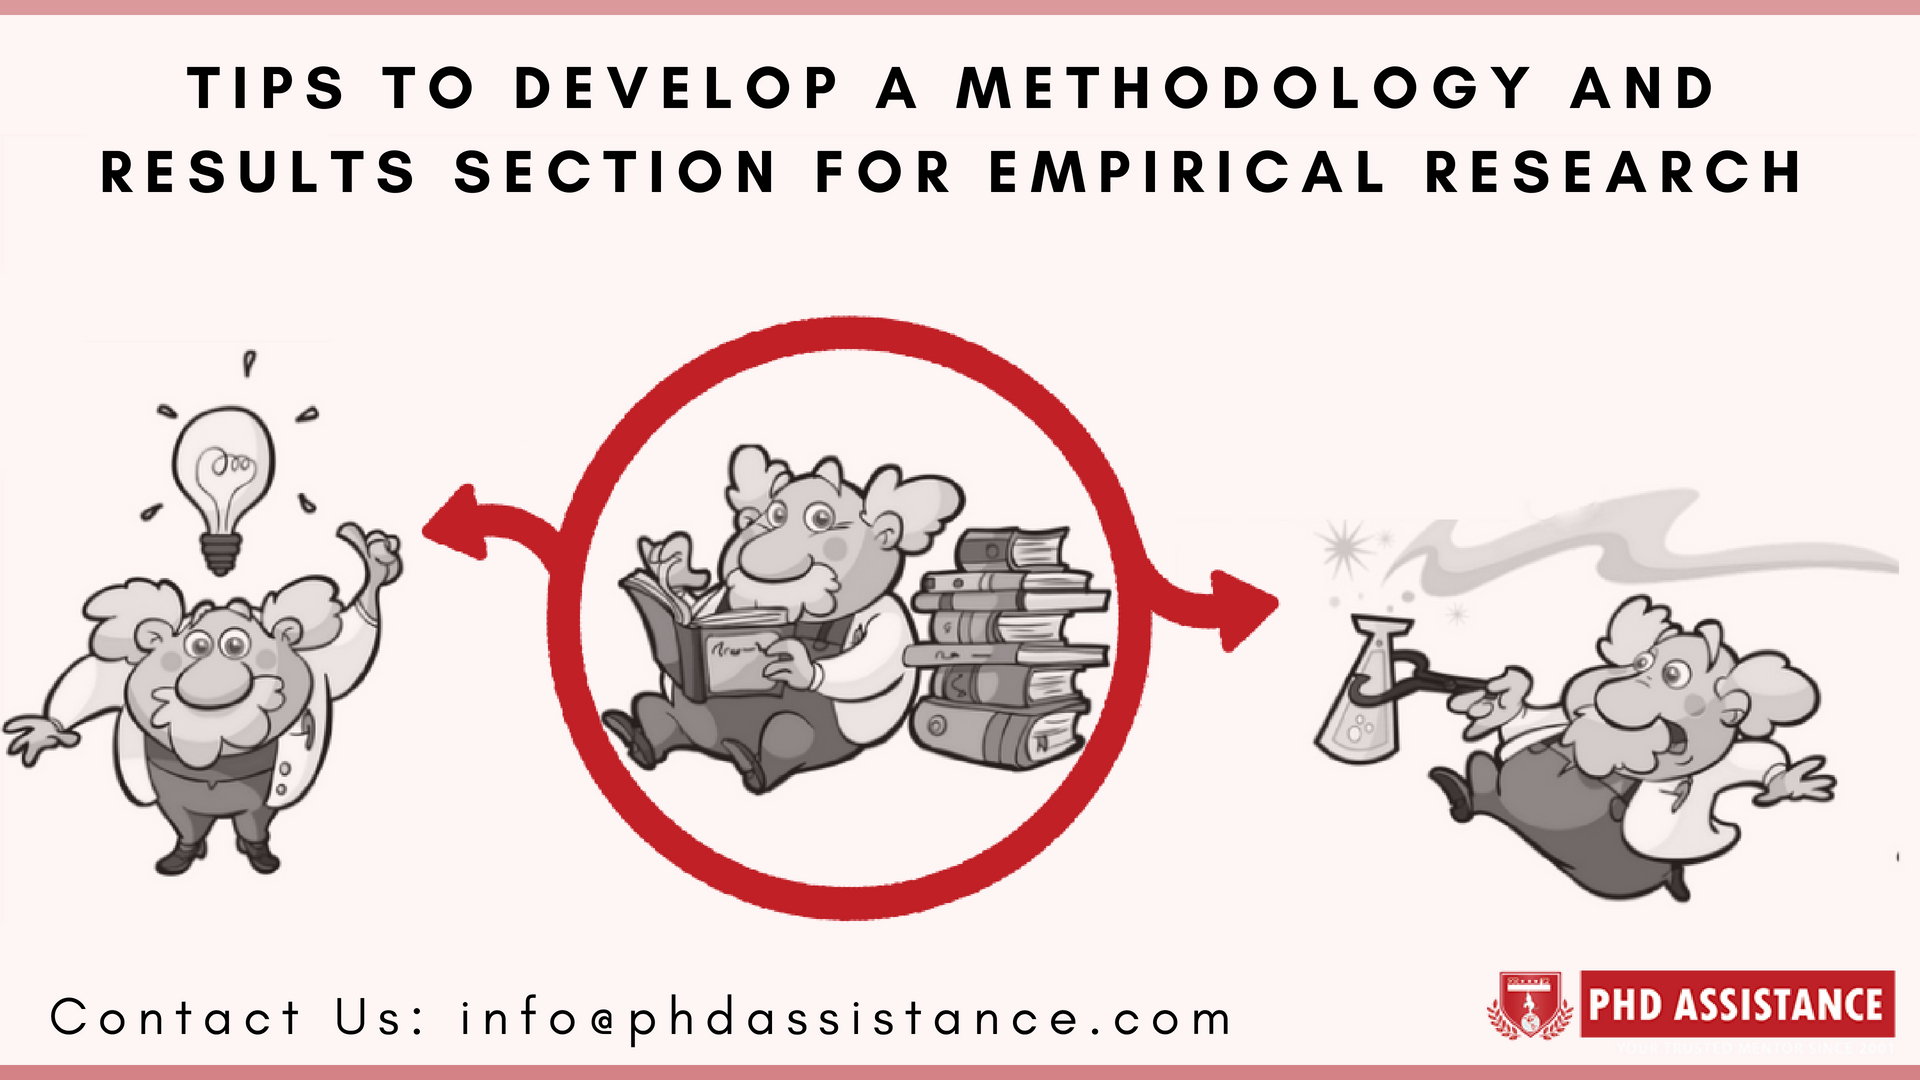 Tips on How to Check the Validity of an Empirical Study, and Develop a Methodology and Results Section